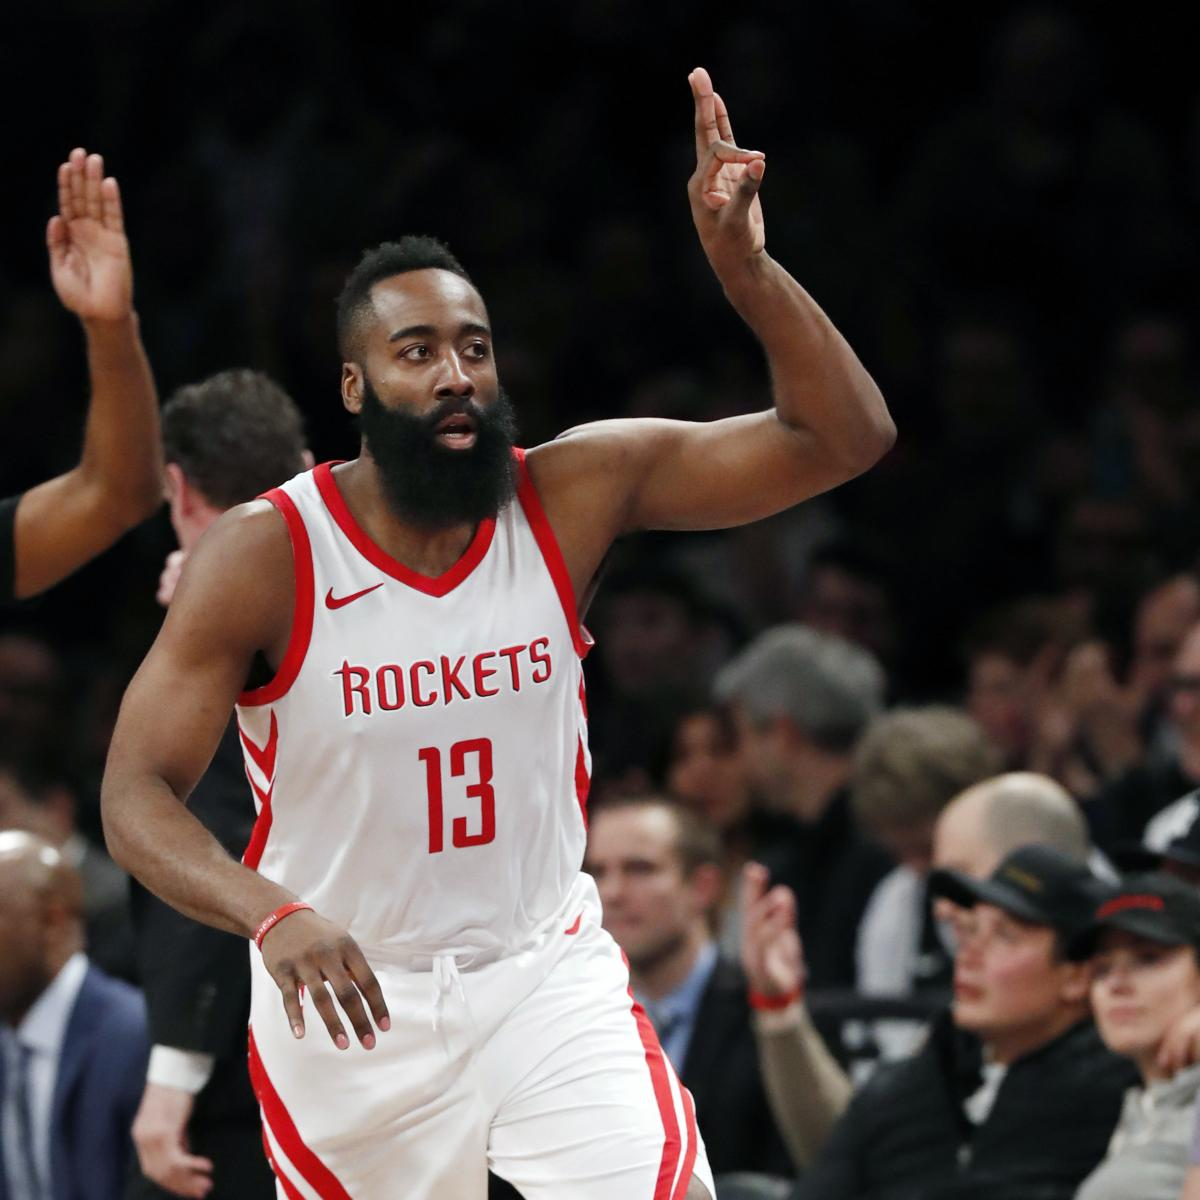 Rockets All Time Roster: Rockets Enter All-Star Break With NBA's Best Record For